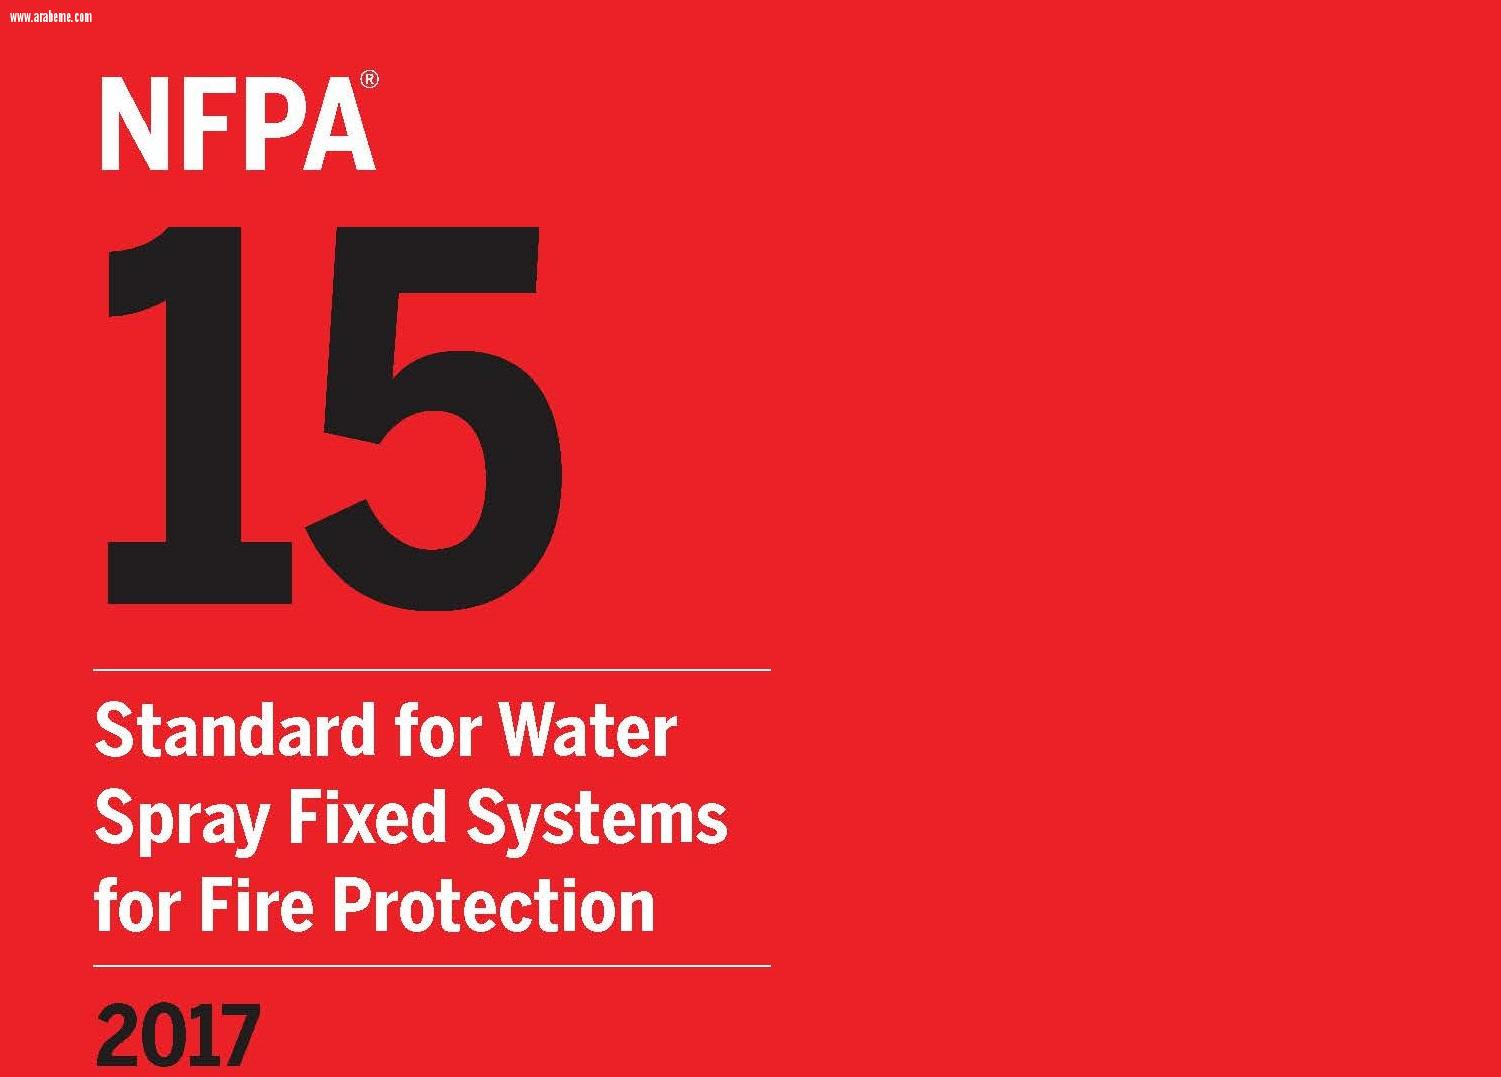 NFPA 15 Standard for Water Spray Fixed Systems for Fire Protection